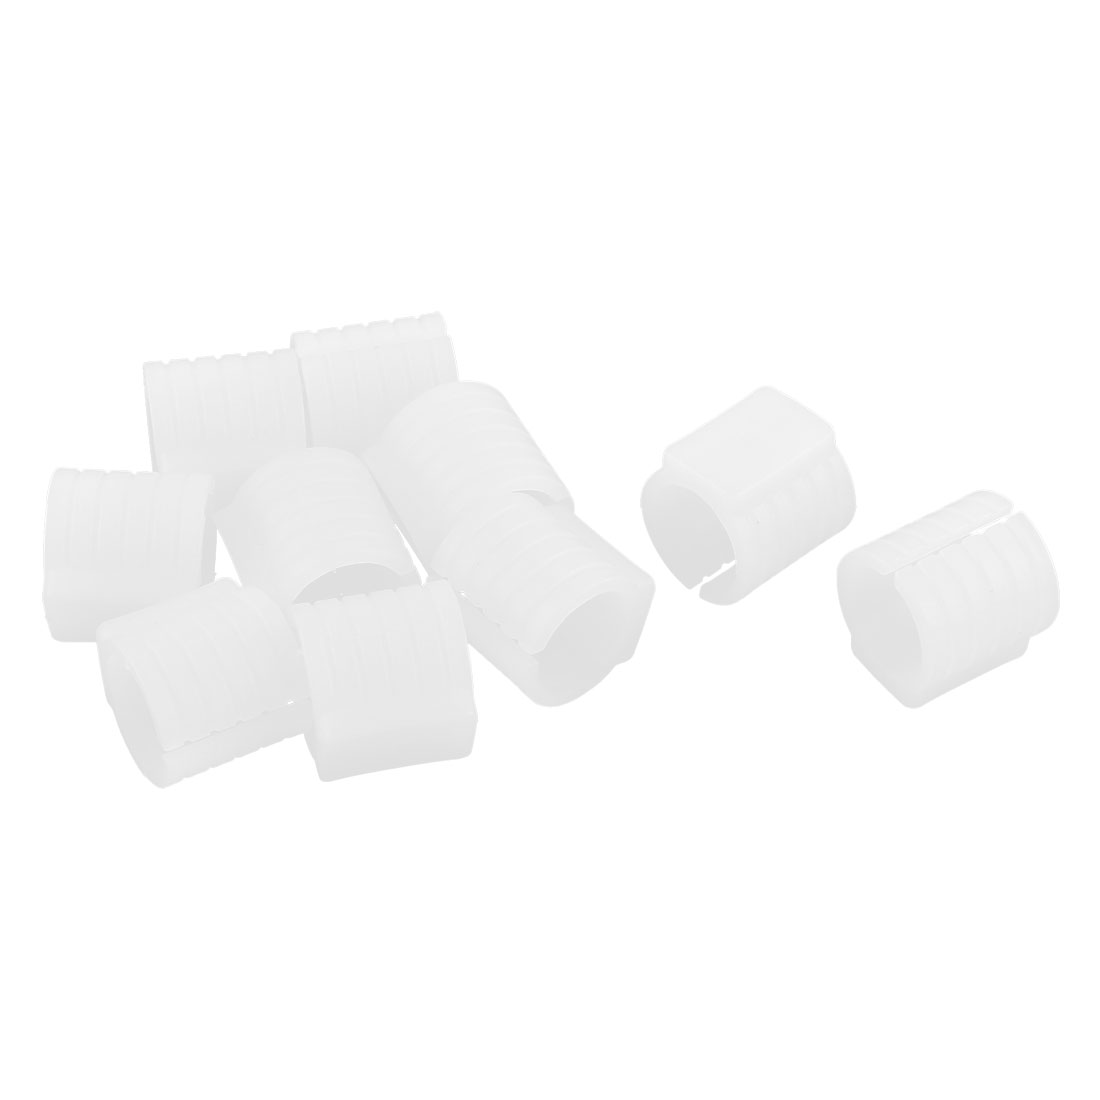 Office Chair Pipe Foot Clamp Pads Floor Glide U-shaped Caps White 13mm Dia 10pcs